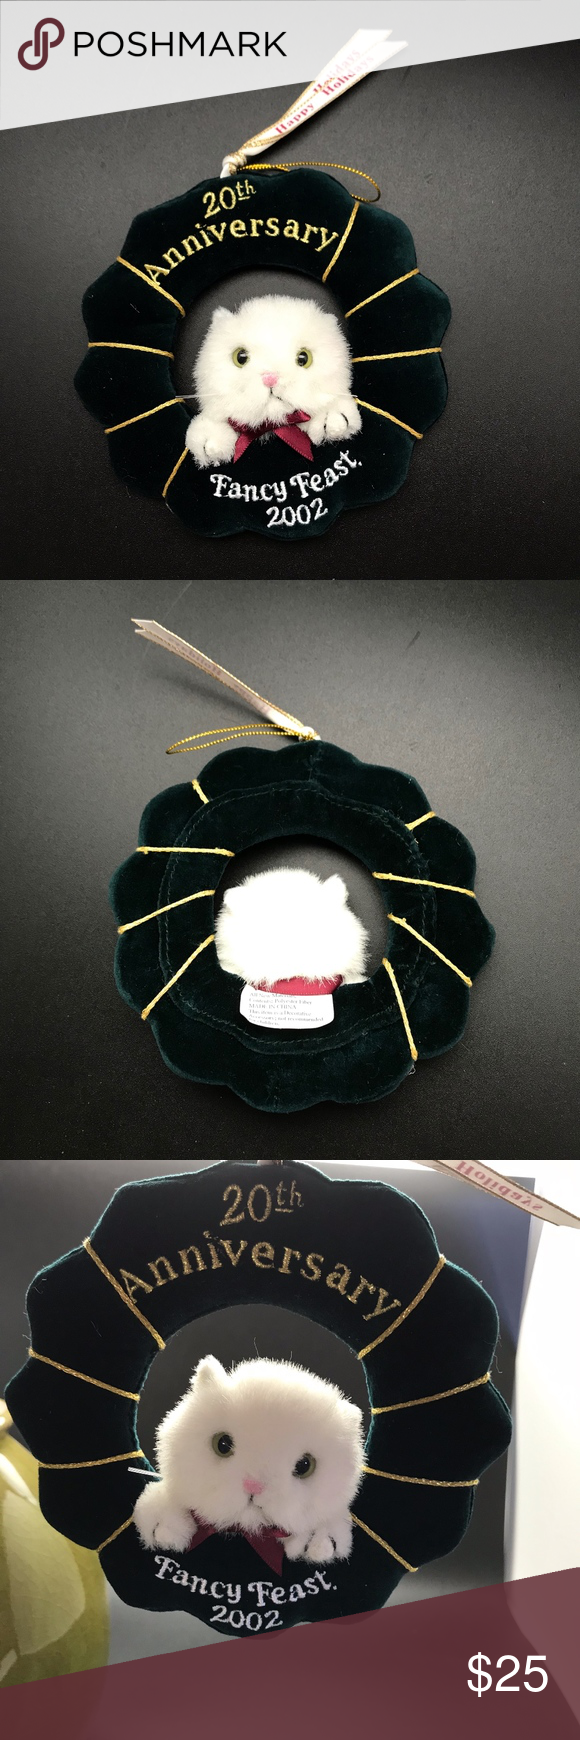 Fancy Feast Christmas Ornament 2020 2002 Fancy Feast Collectible Christmas Ornament in 2020